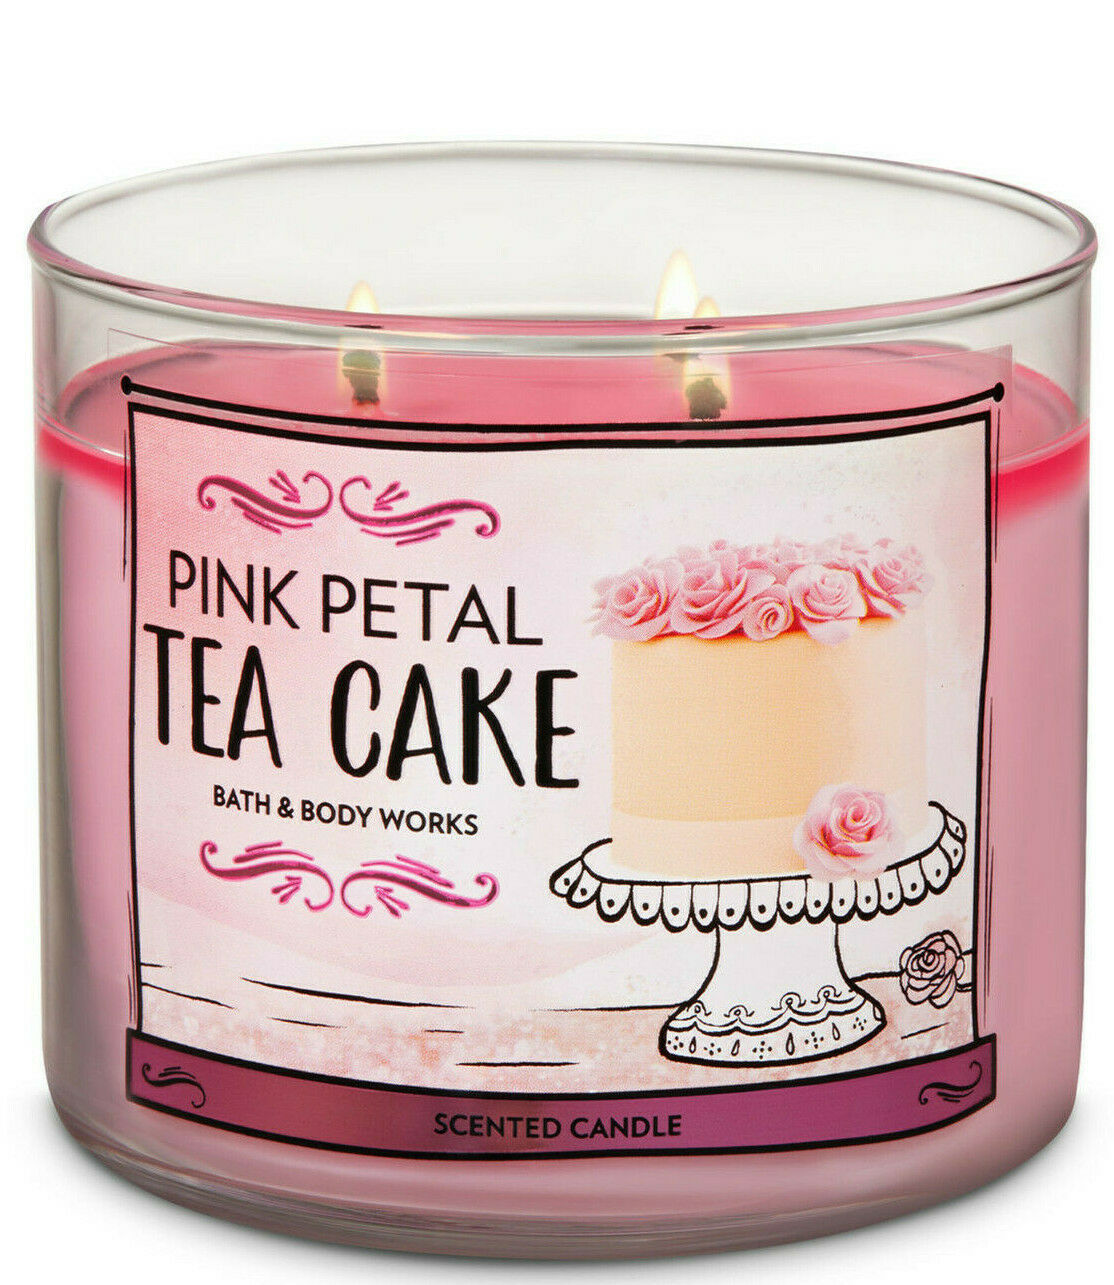 Primary image for Bath & Body Works Pink Petal Tea Cake Three Wick.14.5 Ounces Scented Candle